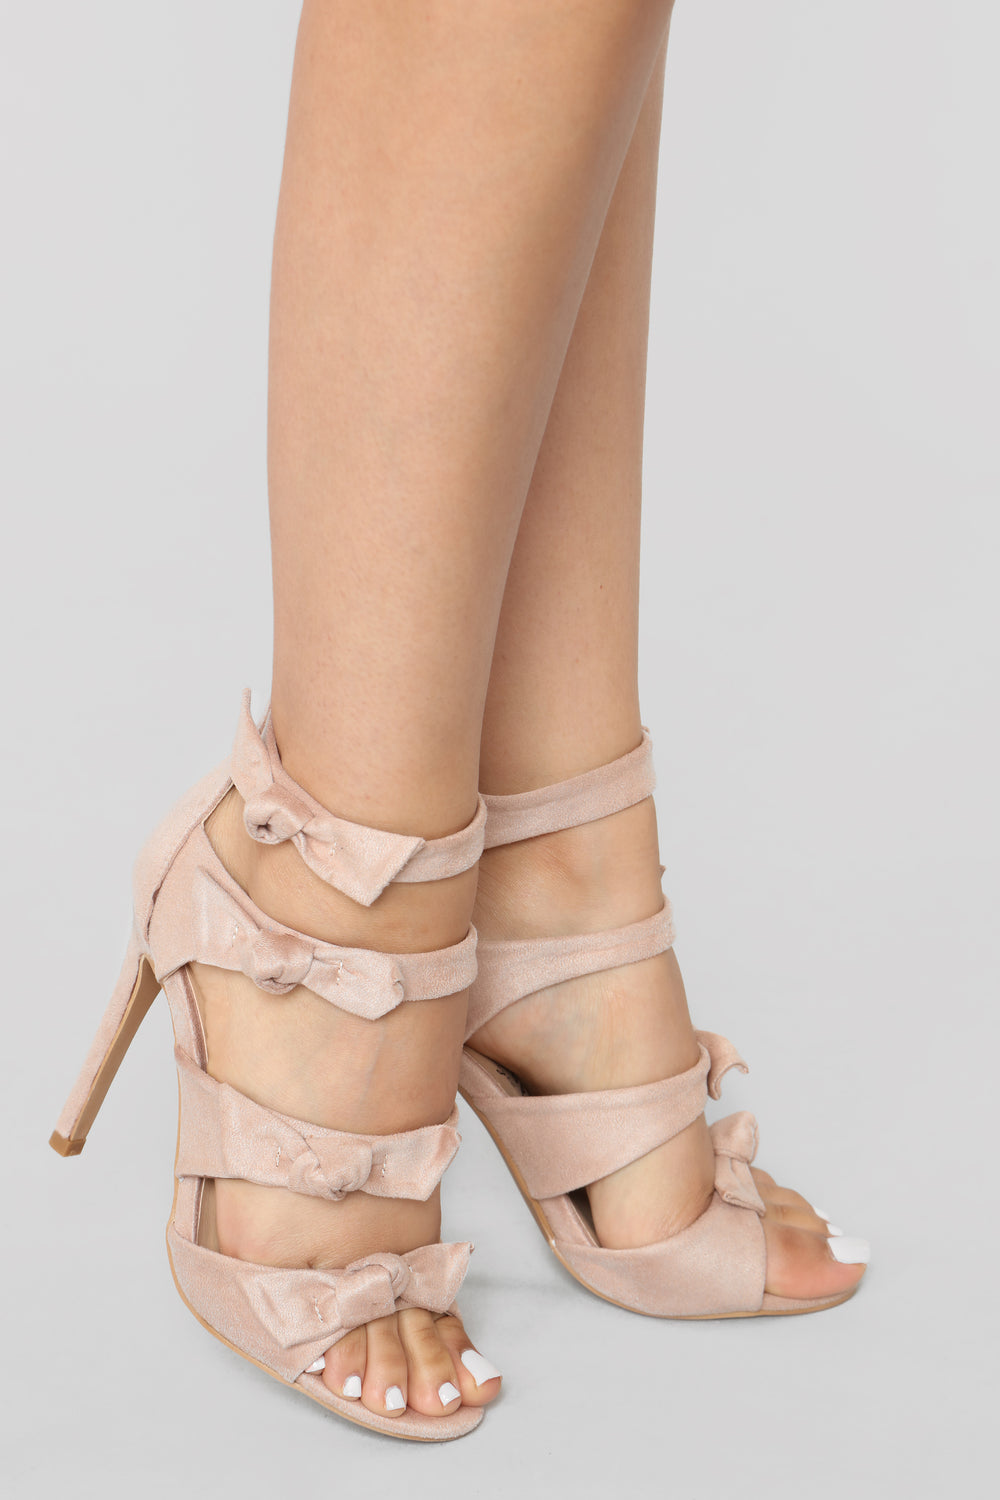 Ready To Mingle Heels - Blush